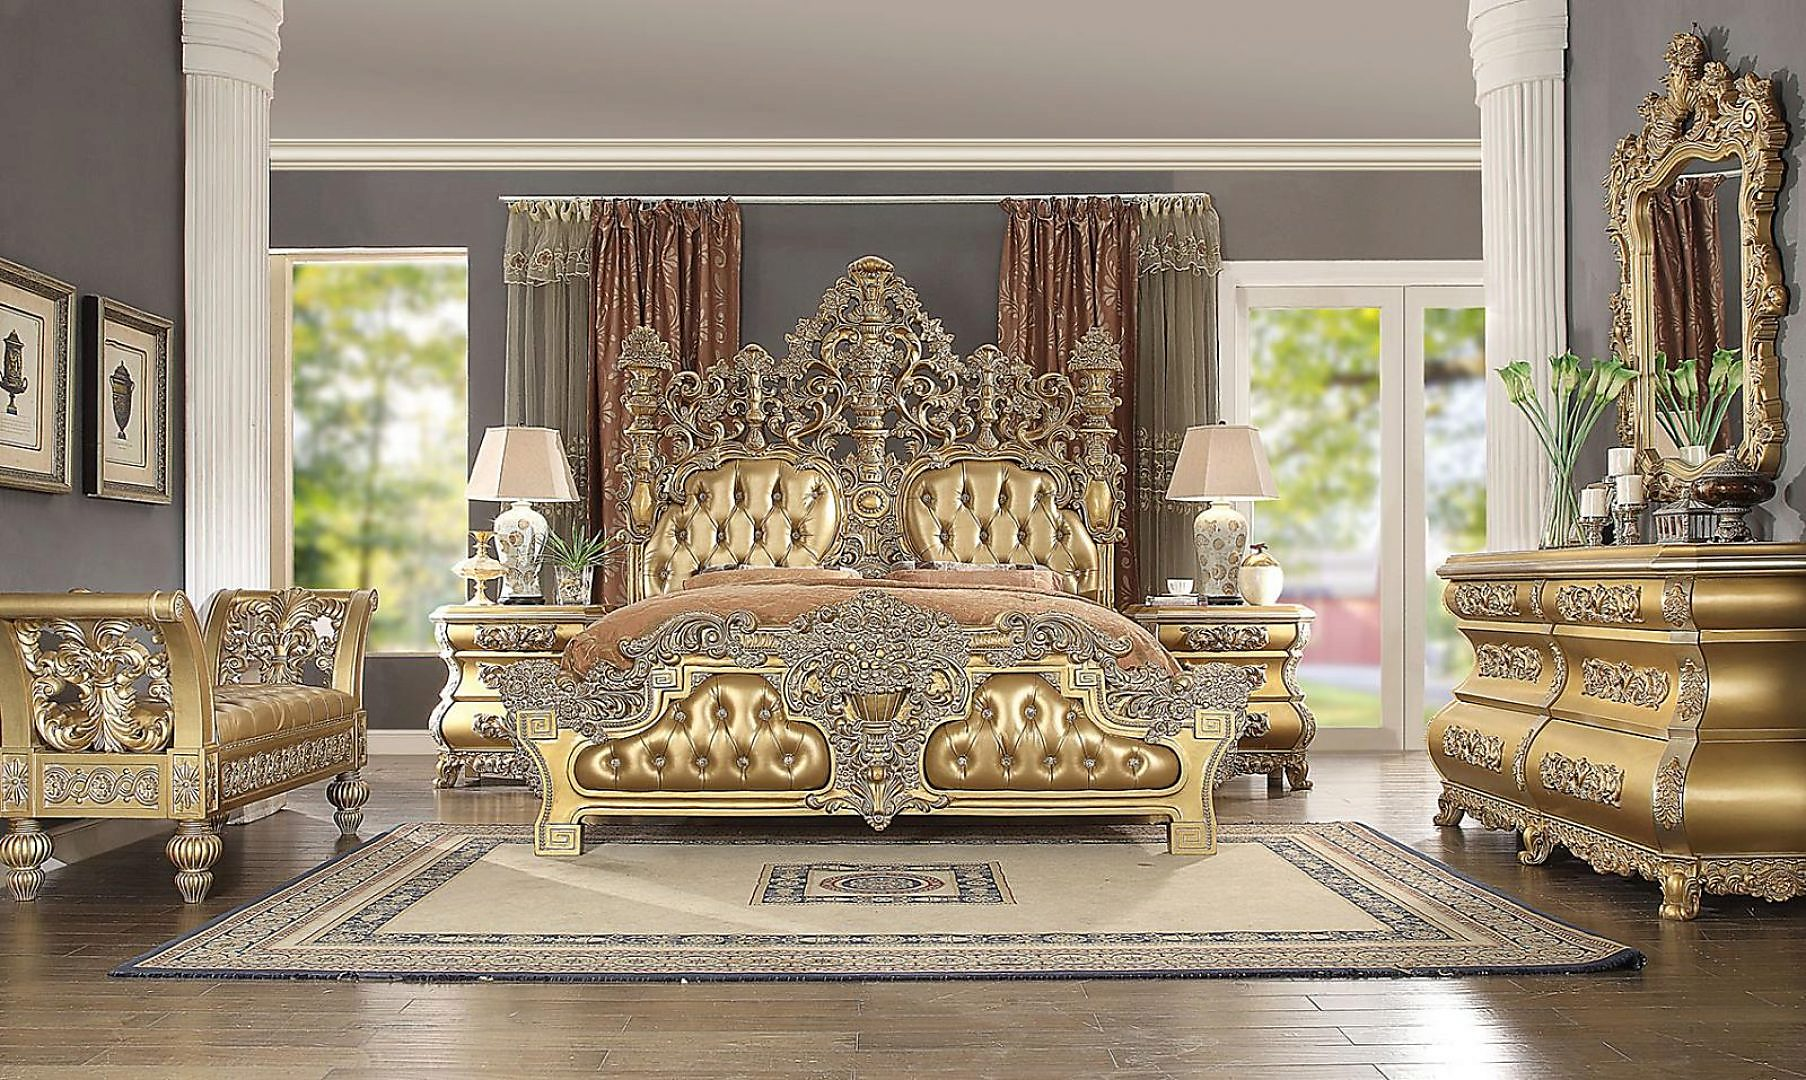 Traditional HD-8016 Gilded Eastern King Bedroom Set 6 Pcs by Homey Design